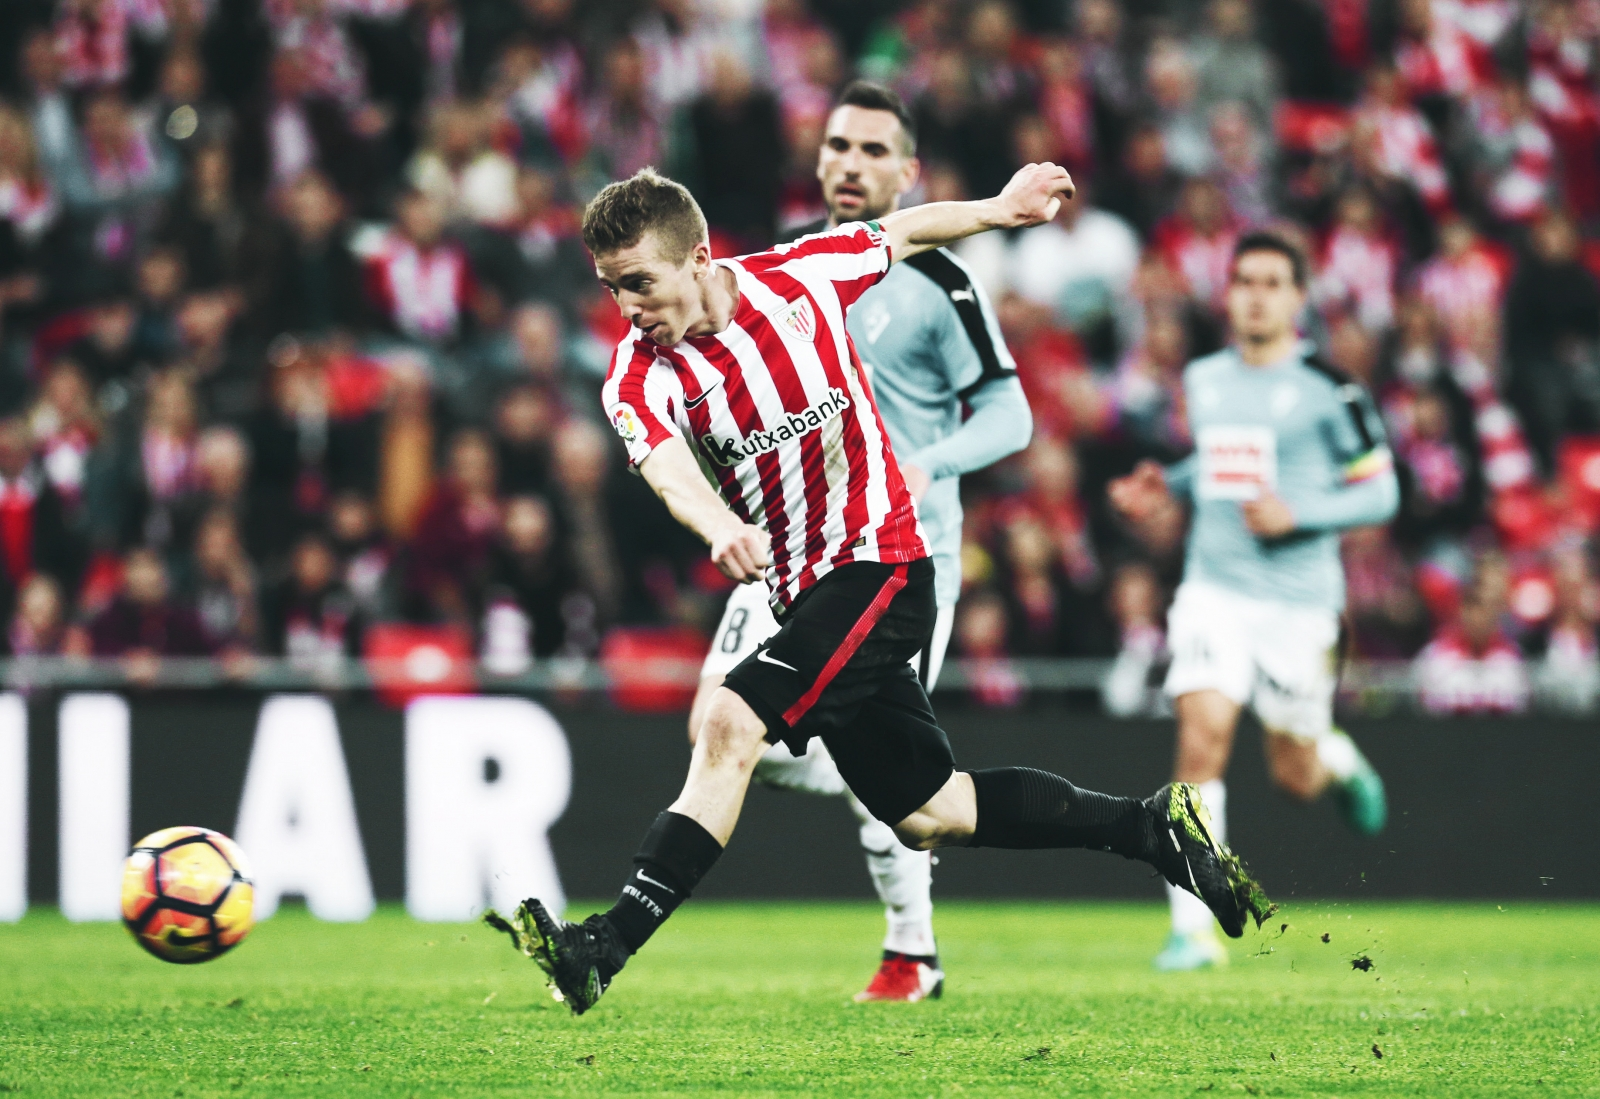 027acfc959bfb Iker Muniain  the uncrowned king of Bilbao undergoing a renaissance